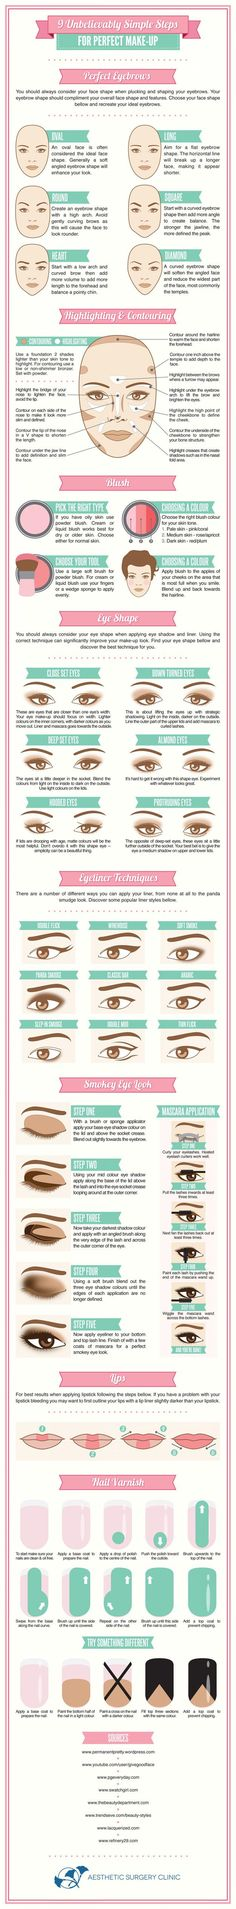 Simple Steps to Perfect Makeup | Everyday Makeup Tips for All Skin Types by Makeup Tutorials at http://makeuptutorials.com/makeup-tutorials-beauty-tips